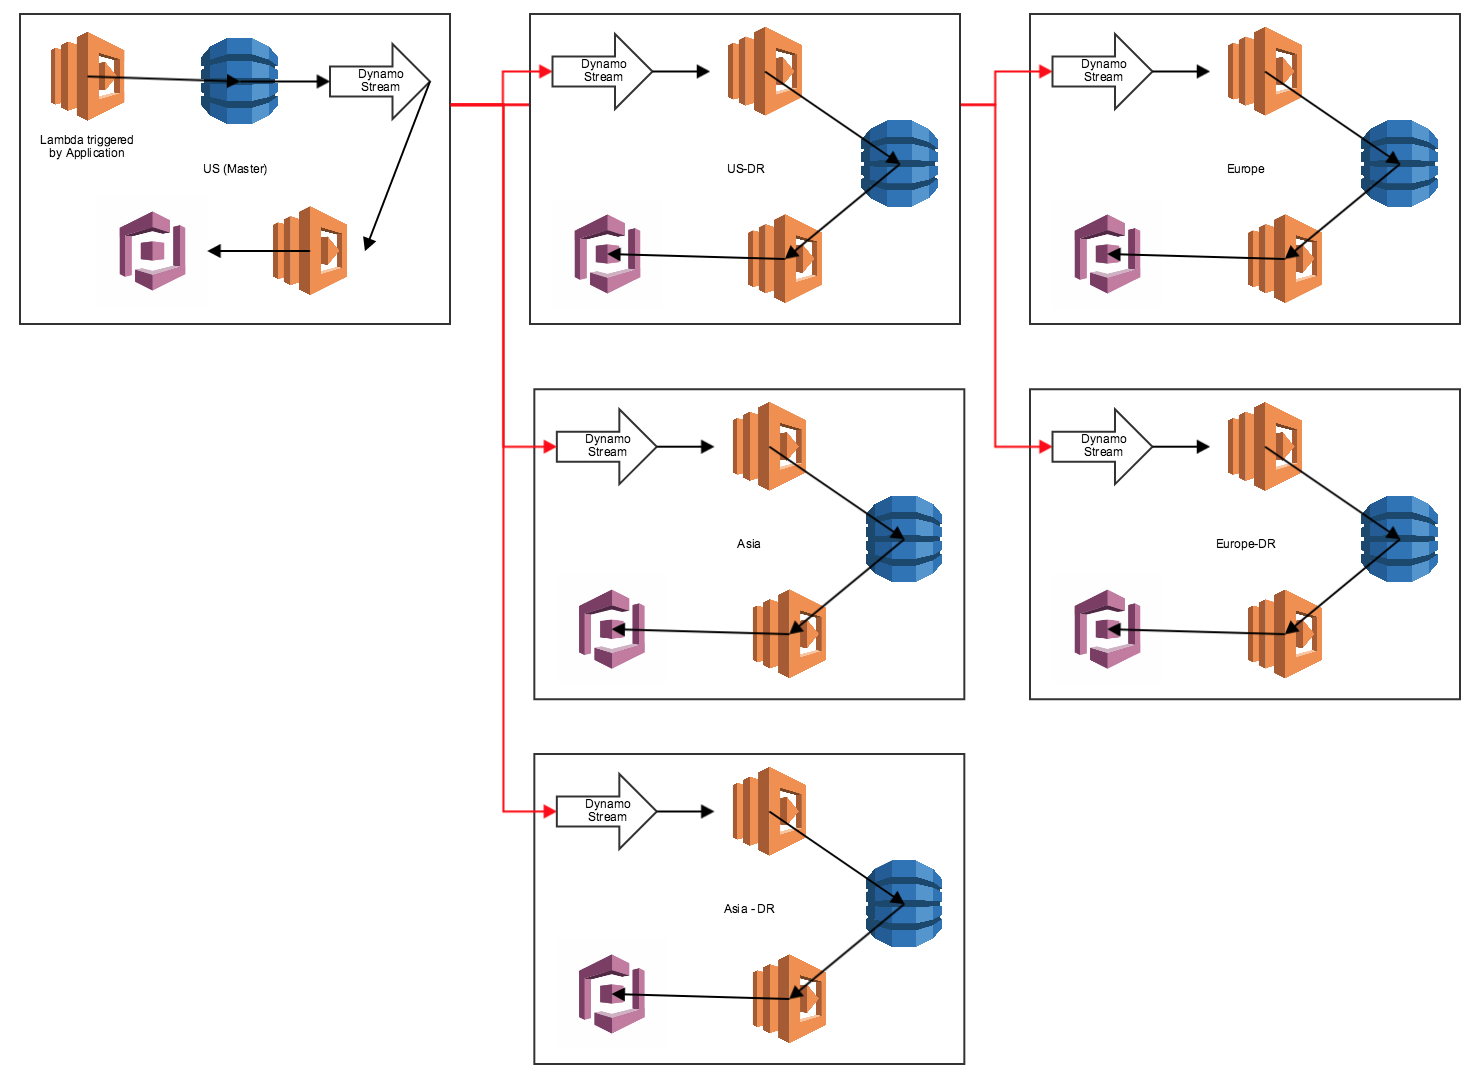 how to choose aws regions